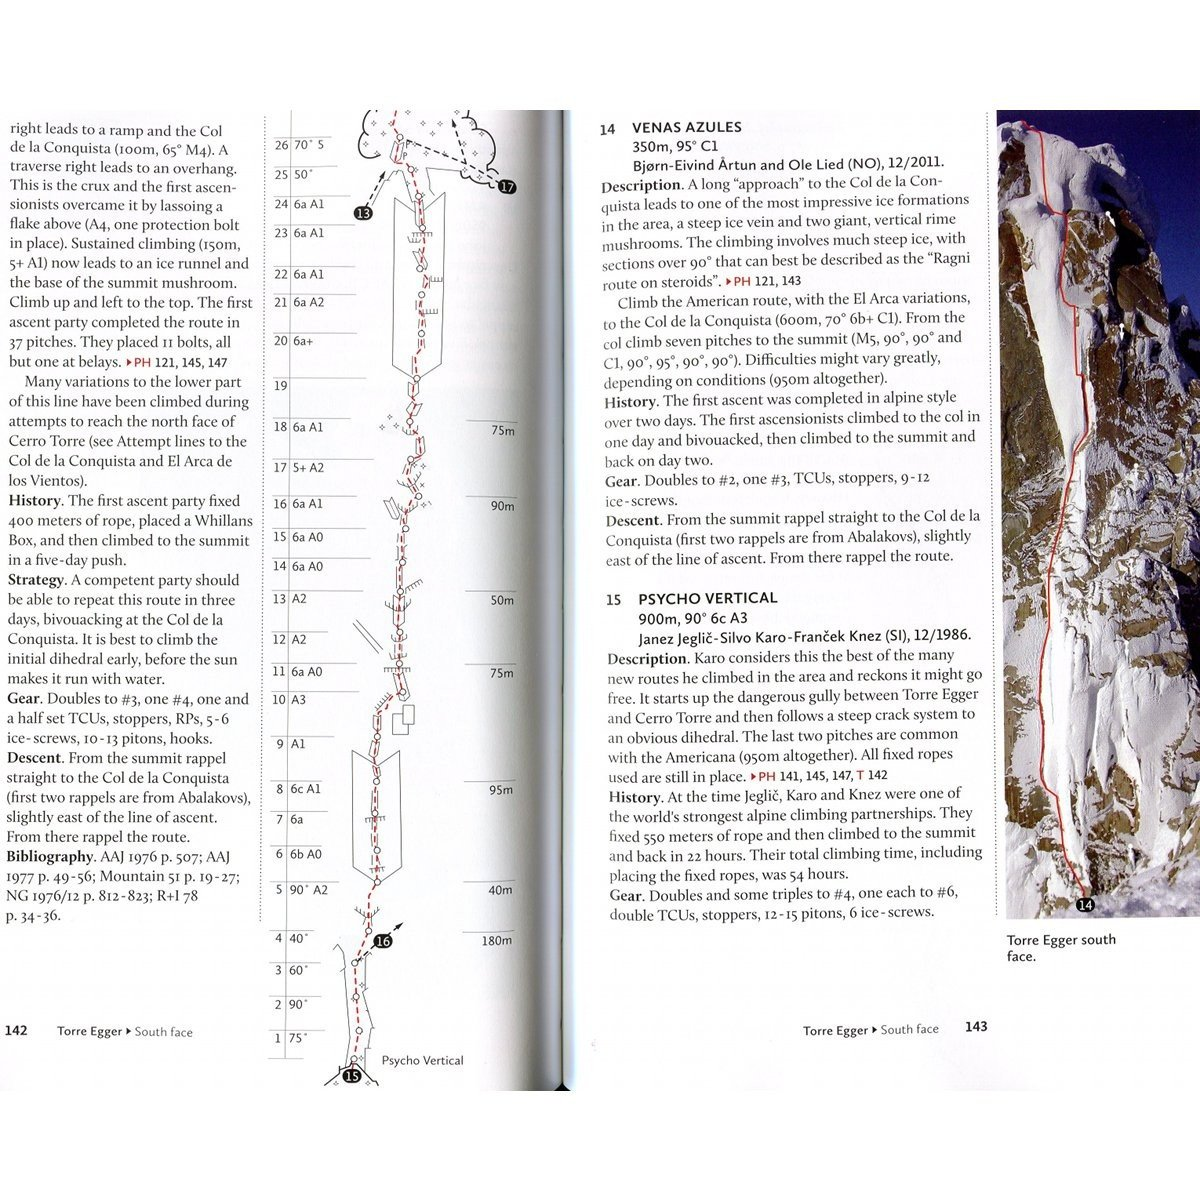 Patagonia Vertical guide, example inside pages showing maps, photos and topos